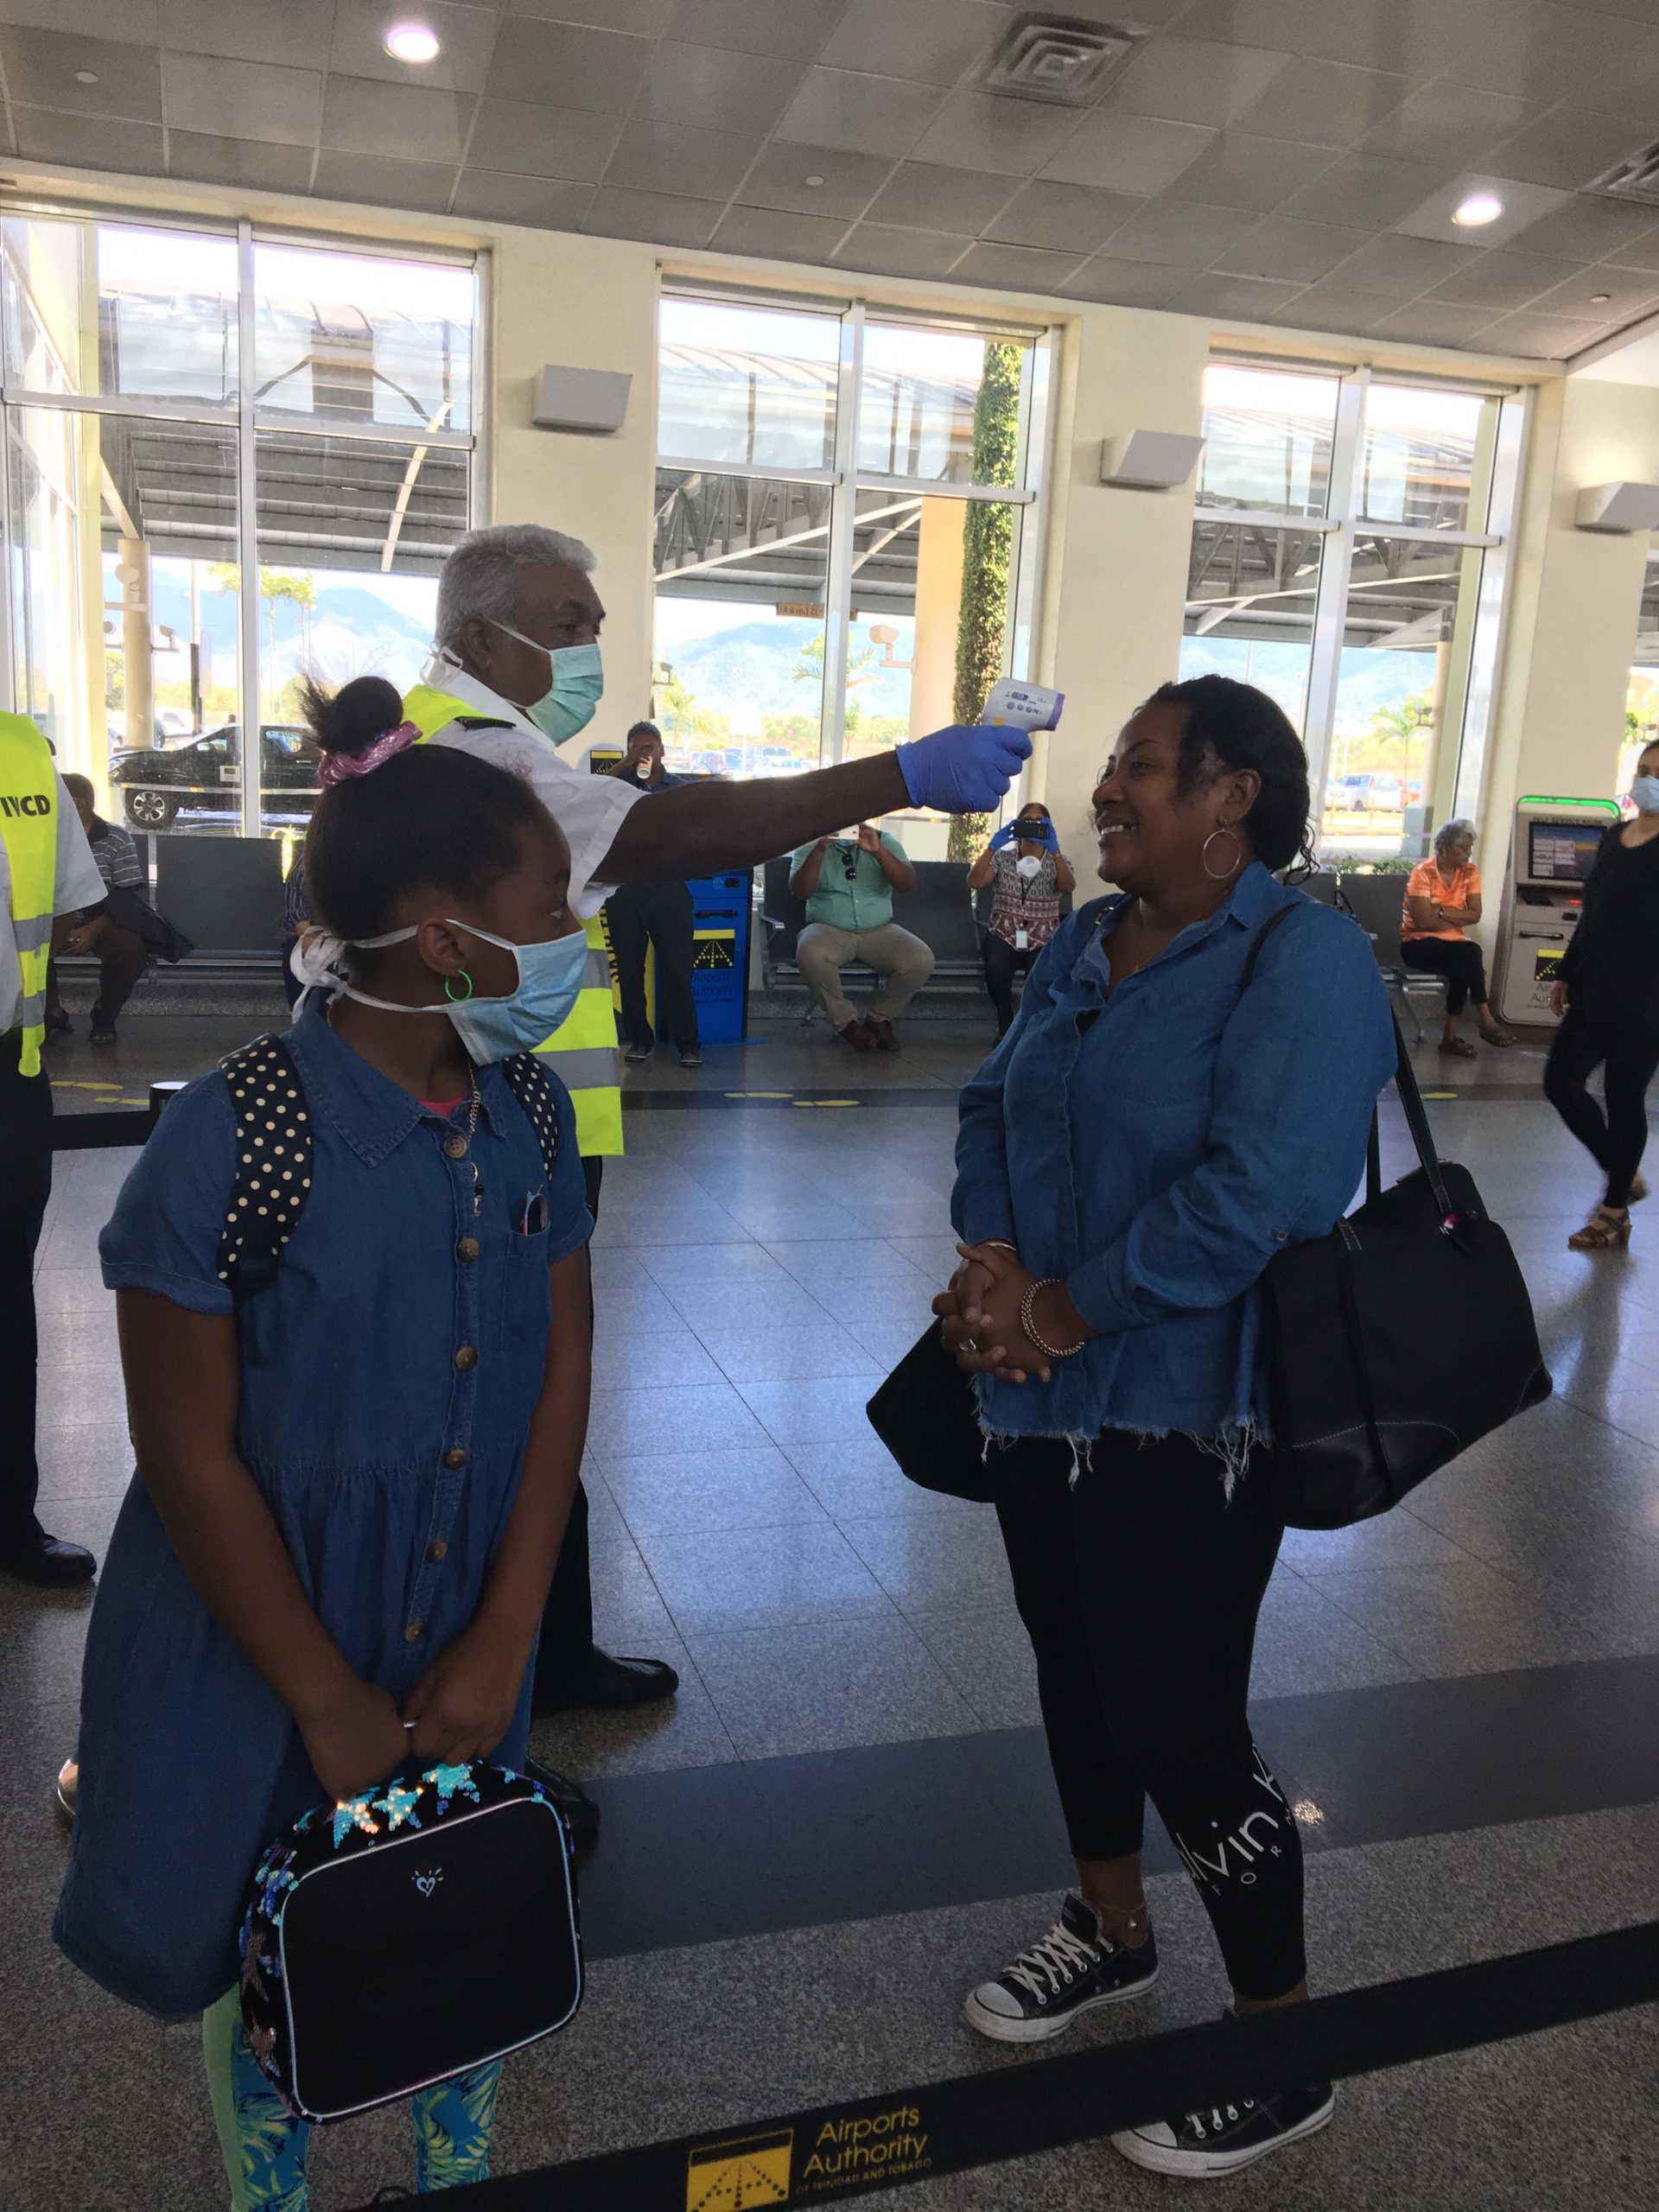 In early April, the U.S. Embassy in Trinidad and Tobago helped repatriate American citizens on a charter flight to the United States with support from the Piarco International Airport staff.